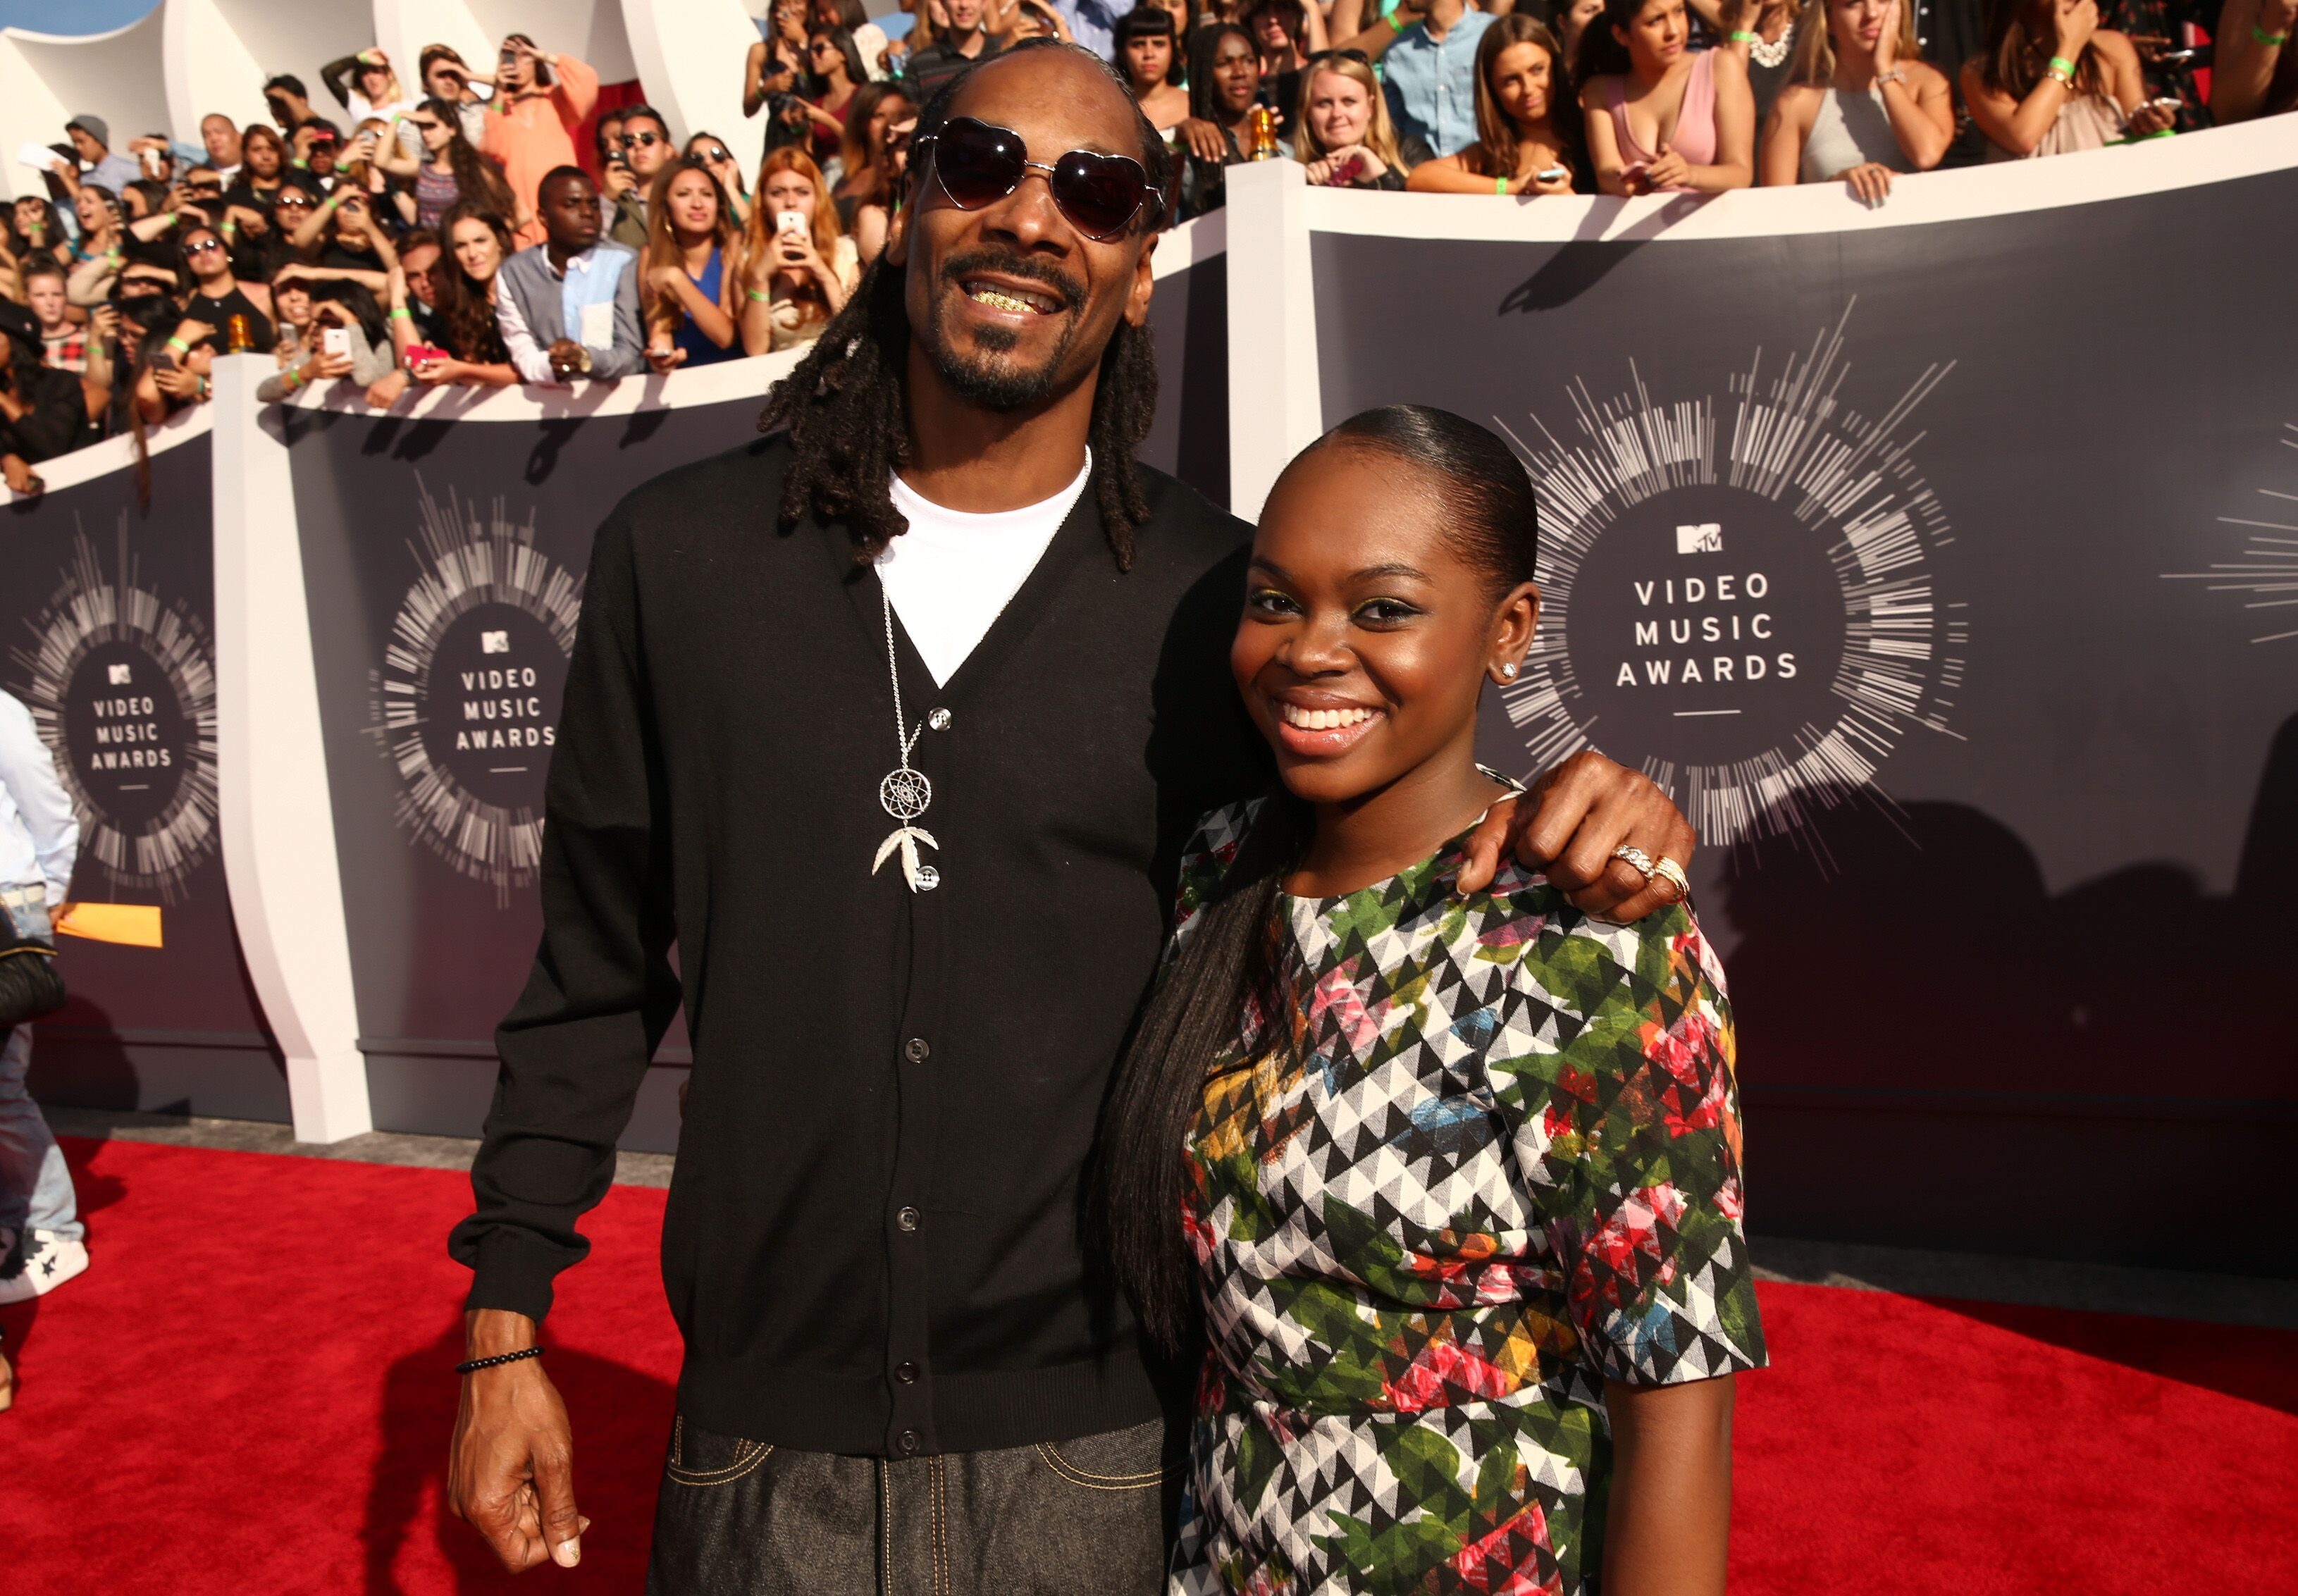 Snoop Dogg and daughter Cori Broadus at the Video Music Awards in 2014 | Source: Getty Images